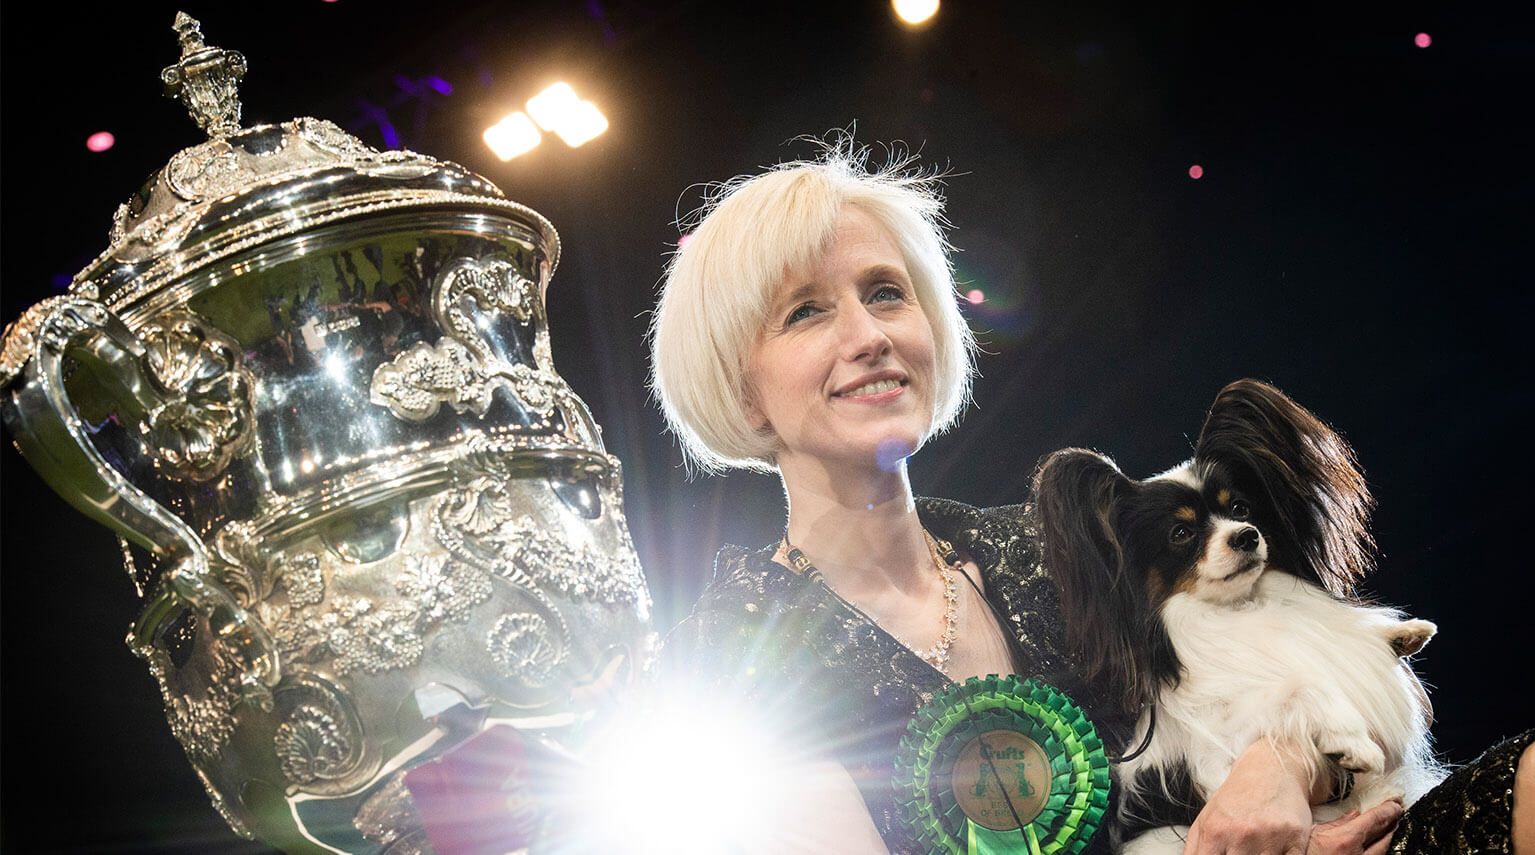 crufts-arenas-image3.jpg